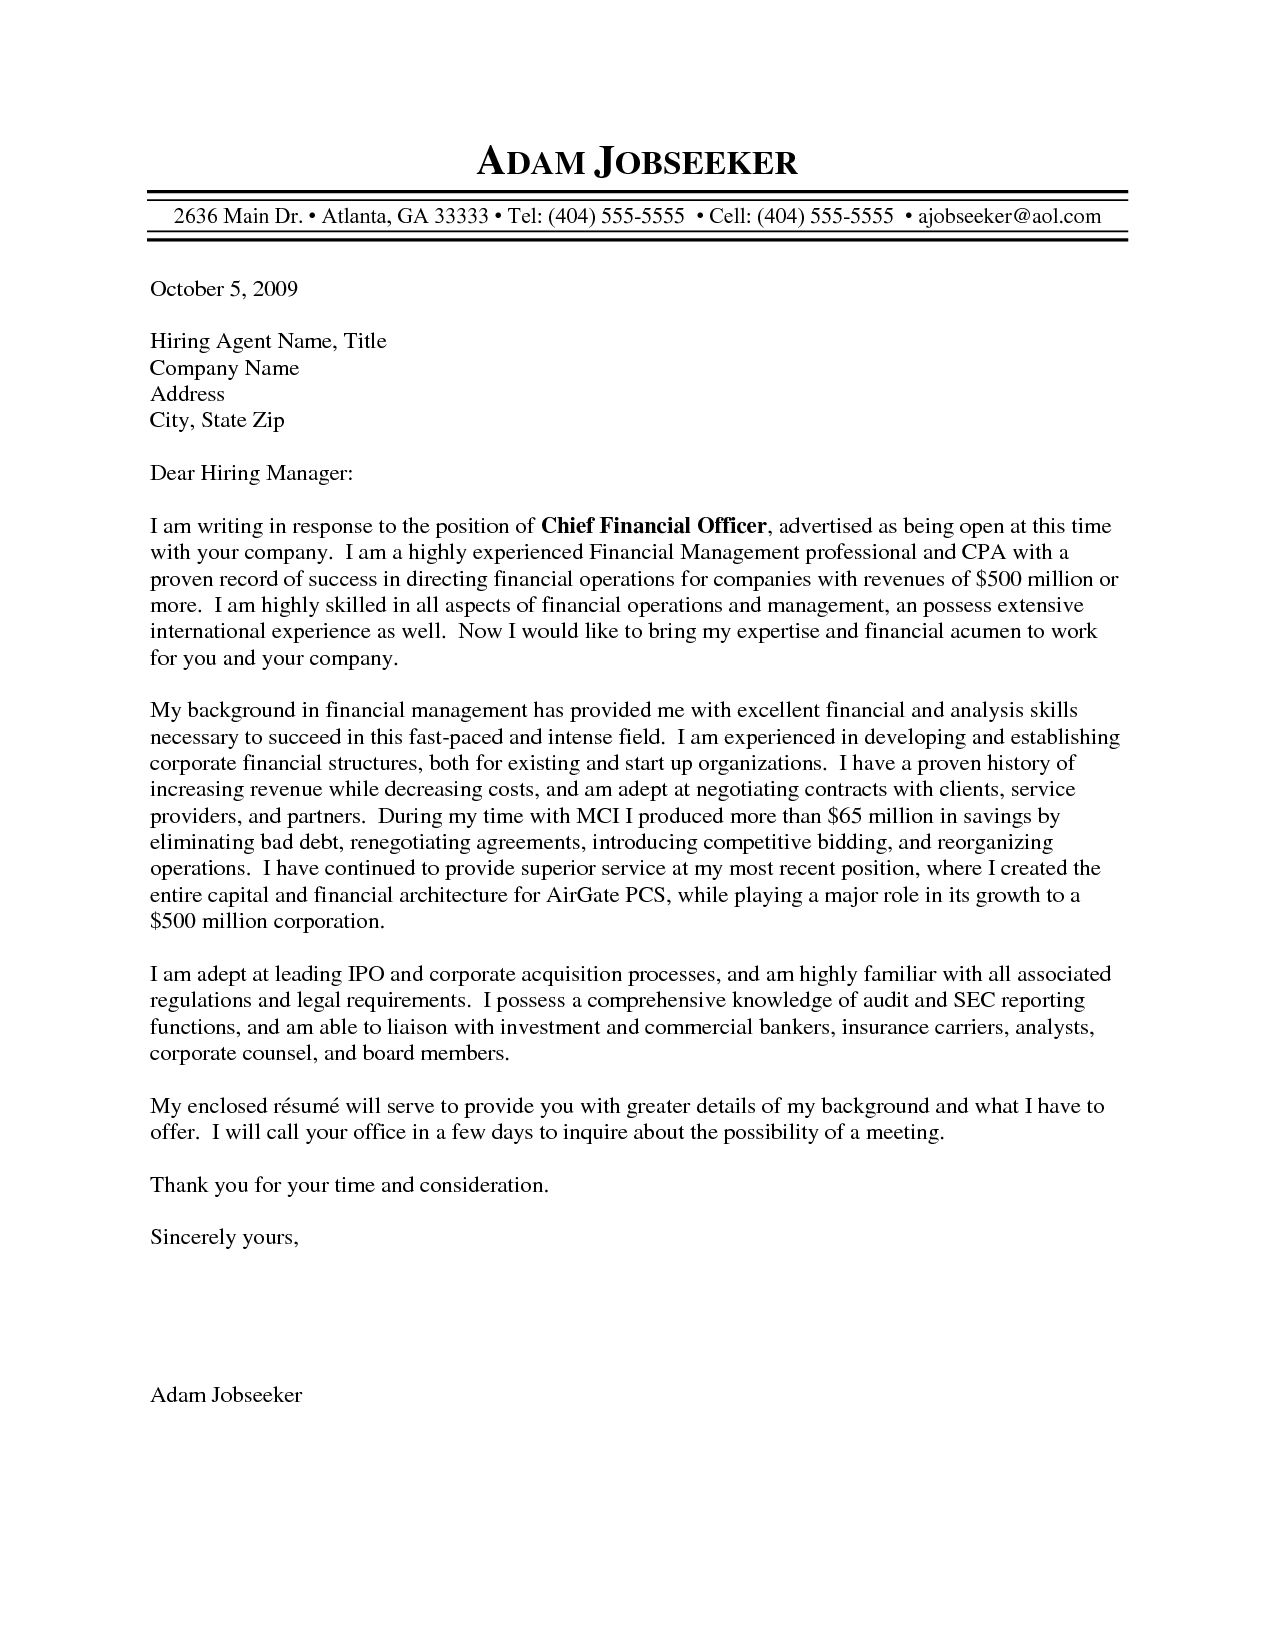 Brand Analyst Cover Letter 26 Cover Letter Samples For Resume Cover Letter Samples For